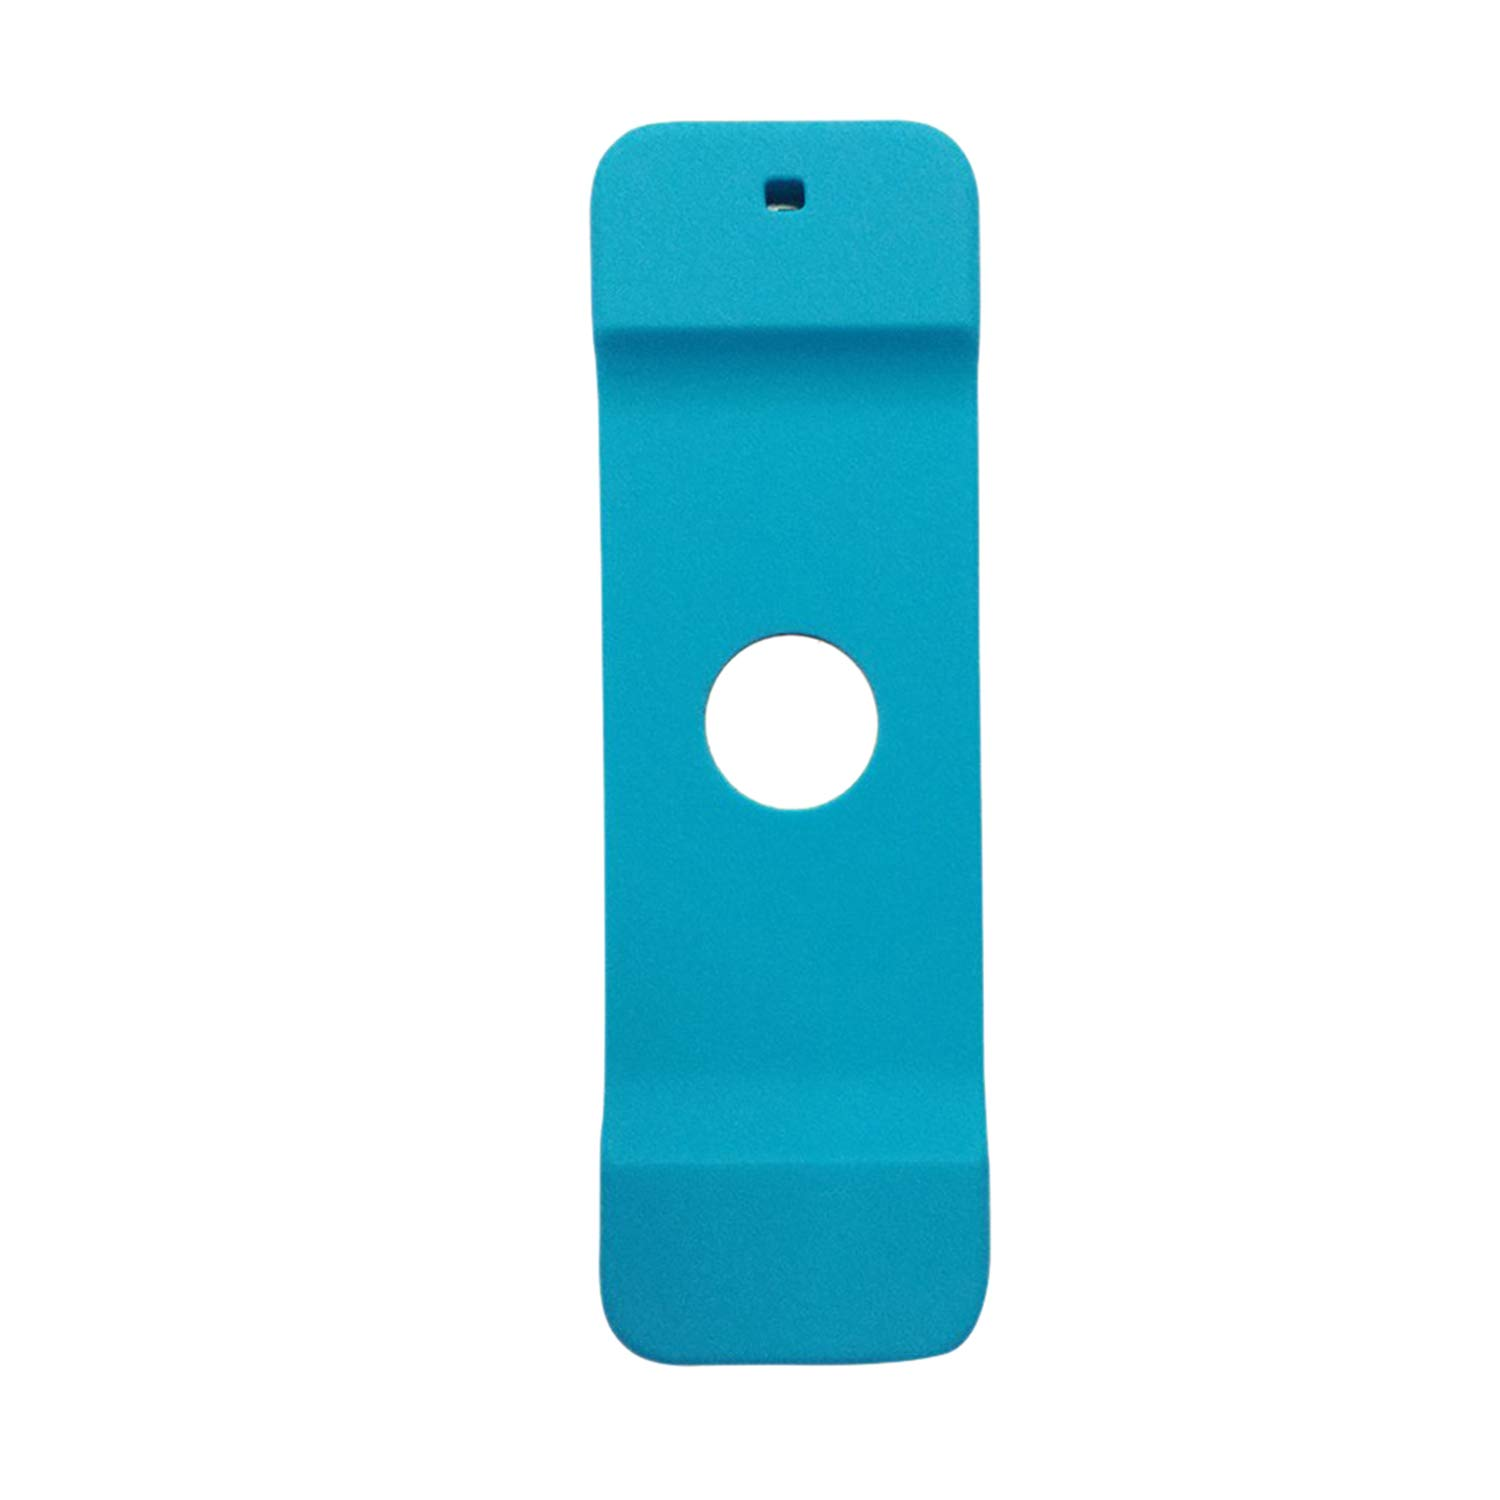 Nrpfell Silicone Fitted Case for Apple TV 4 Remote Control Protector Cover Bag with Lanyard Strap Protection Retail Package for TV4(Blue)